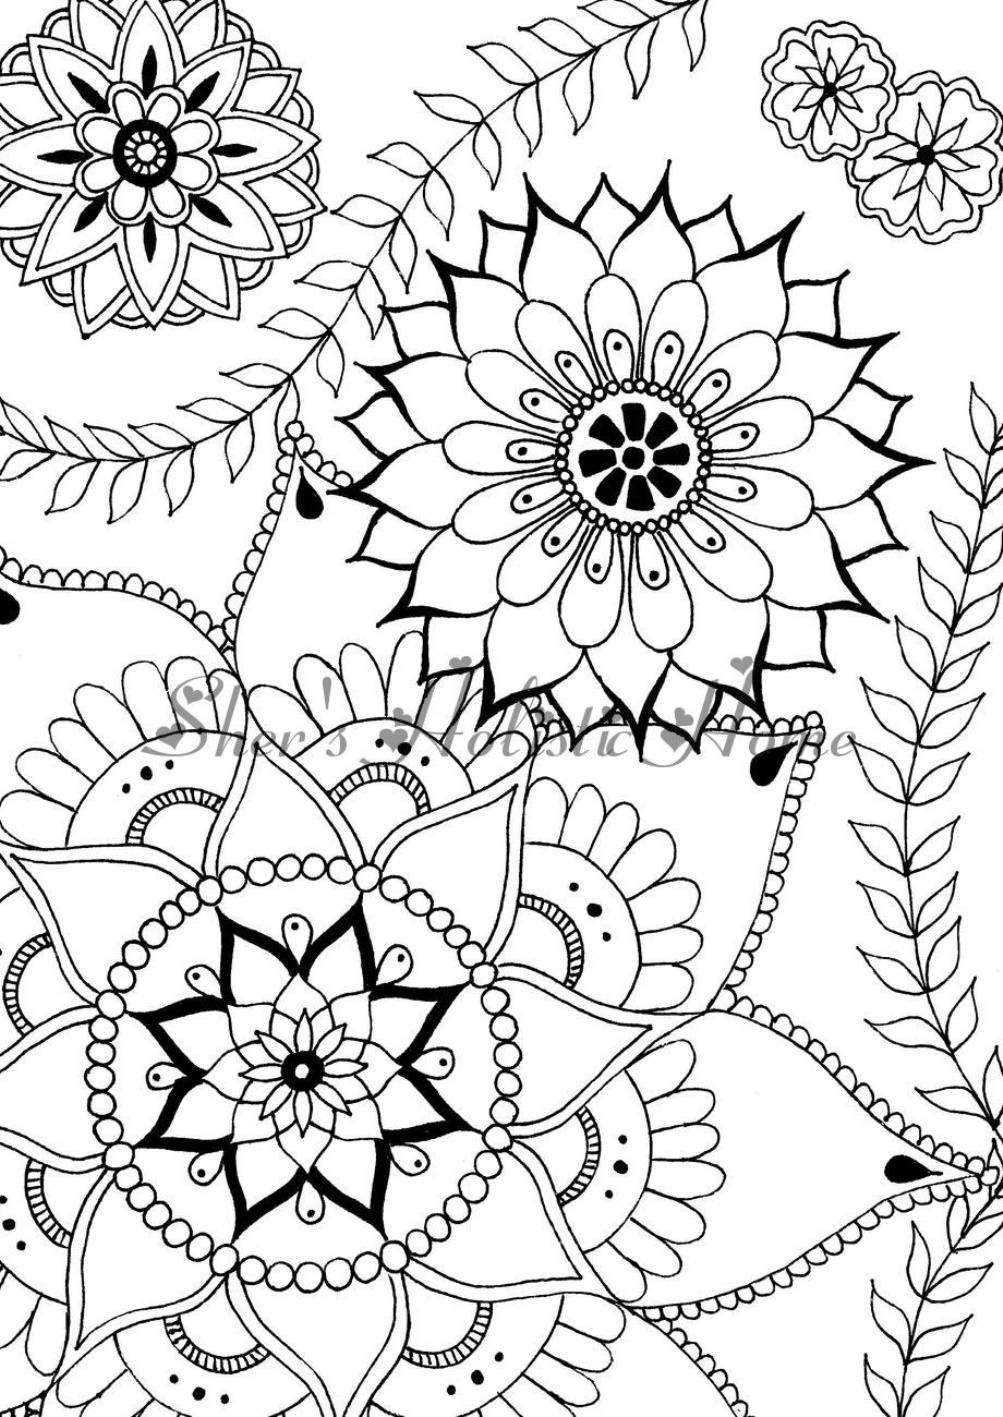 Flower Coloring Page Mandala Coloring Page Flower Mandala Etsy Mandala Coloring Pages Mandala Coloring Flower Coloring Pages